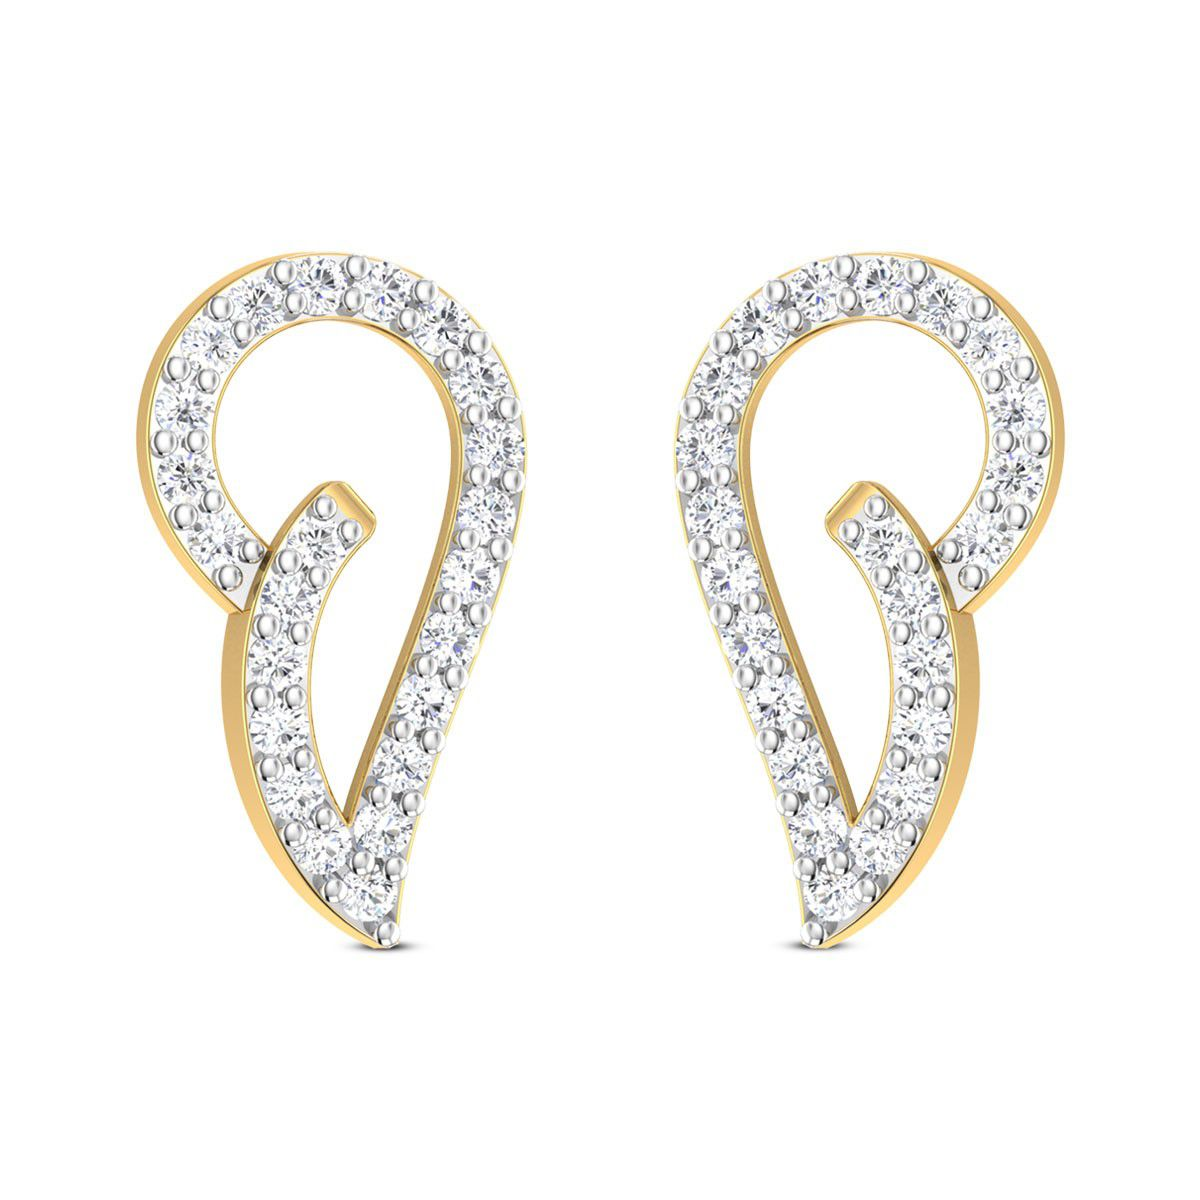 Zaamor Diamonds 18k BIS Hallmarked Yellow Gold Diamond Studs